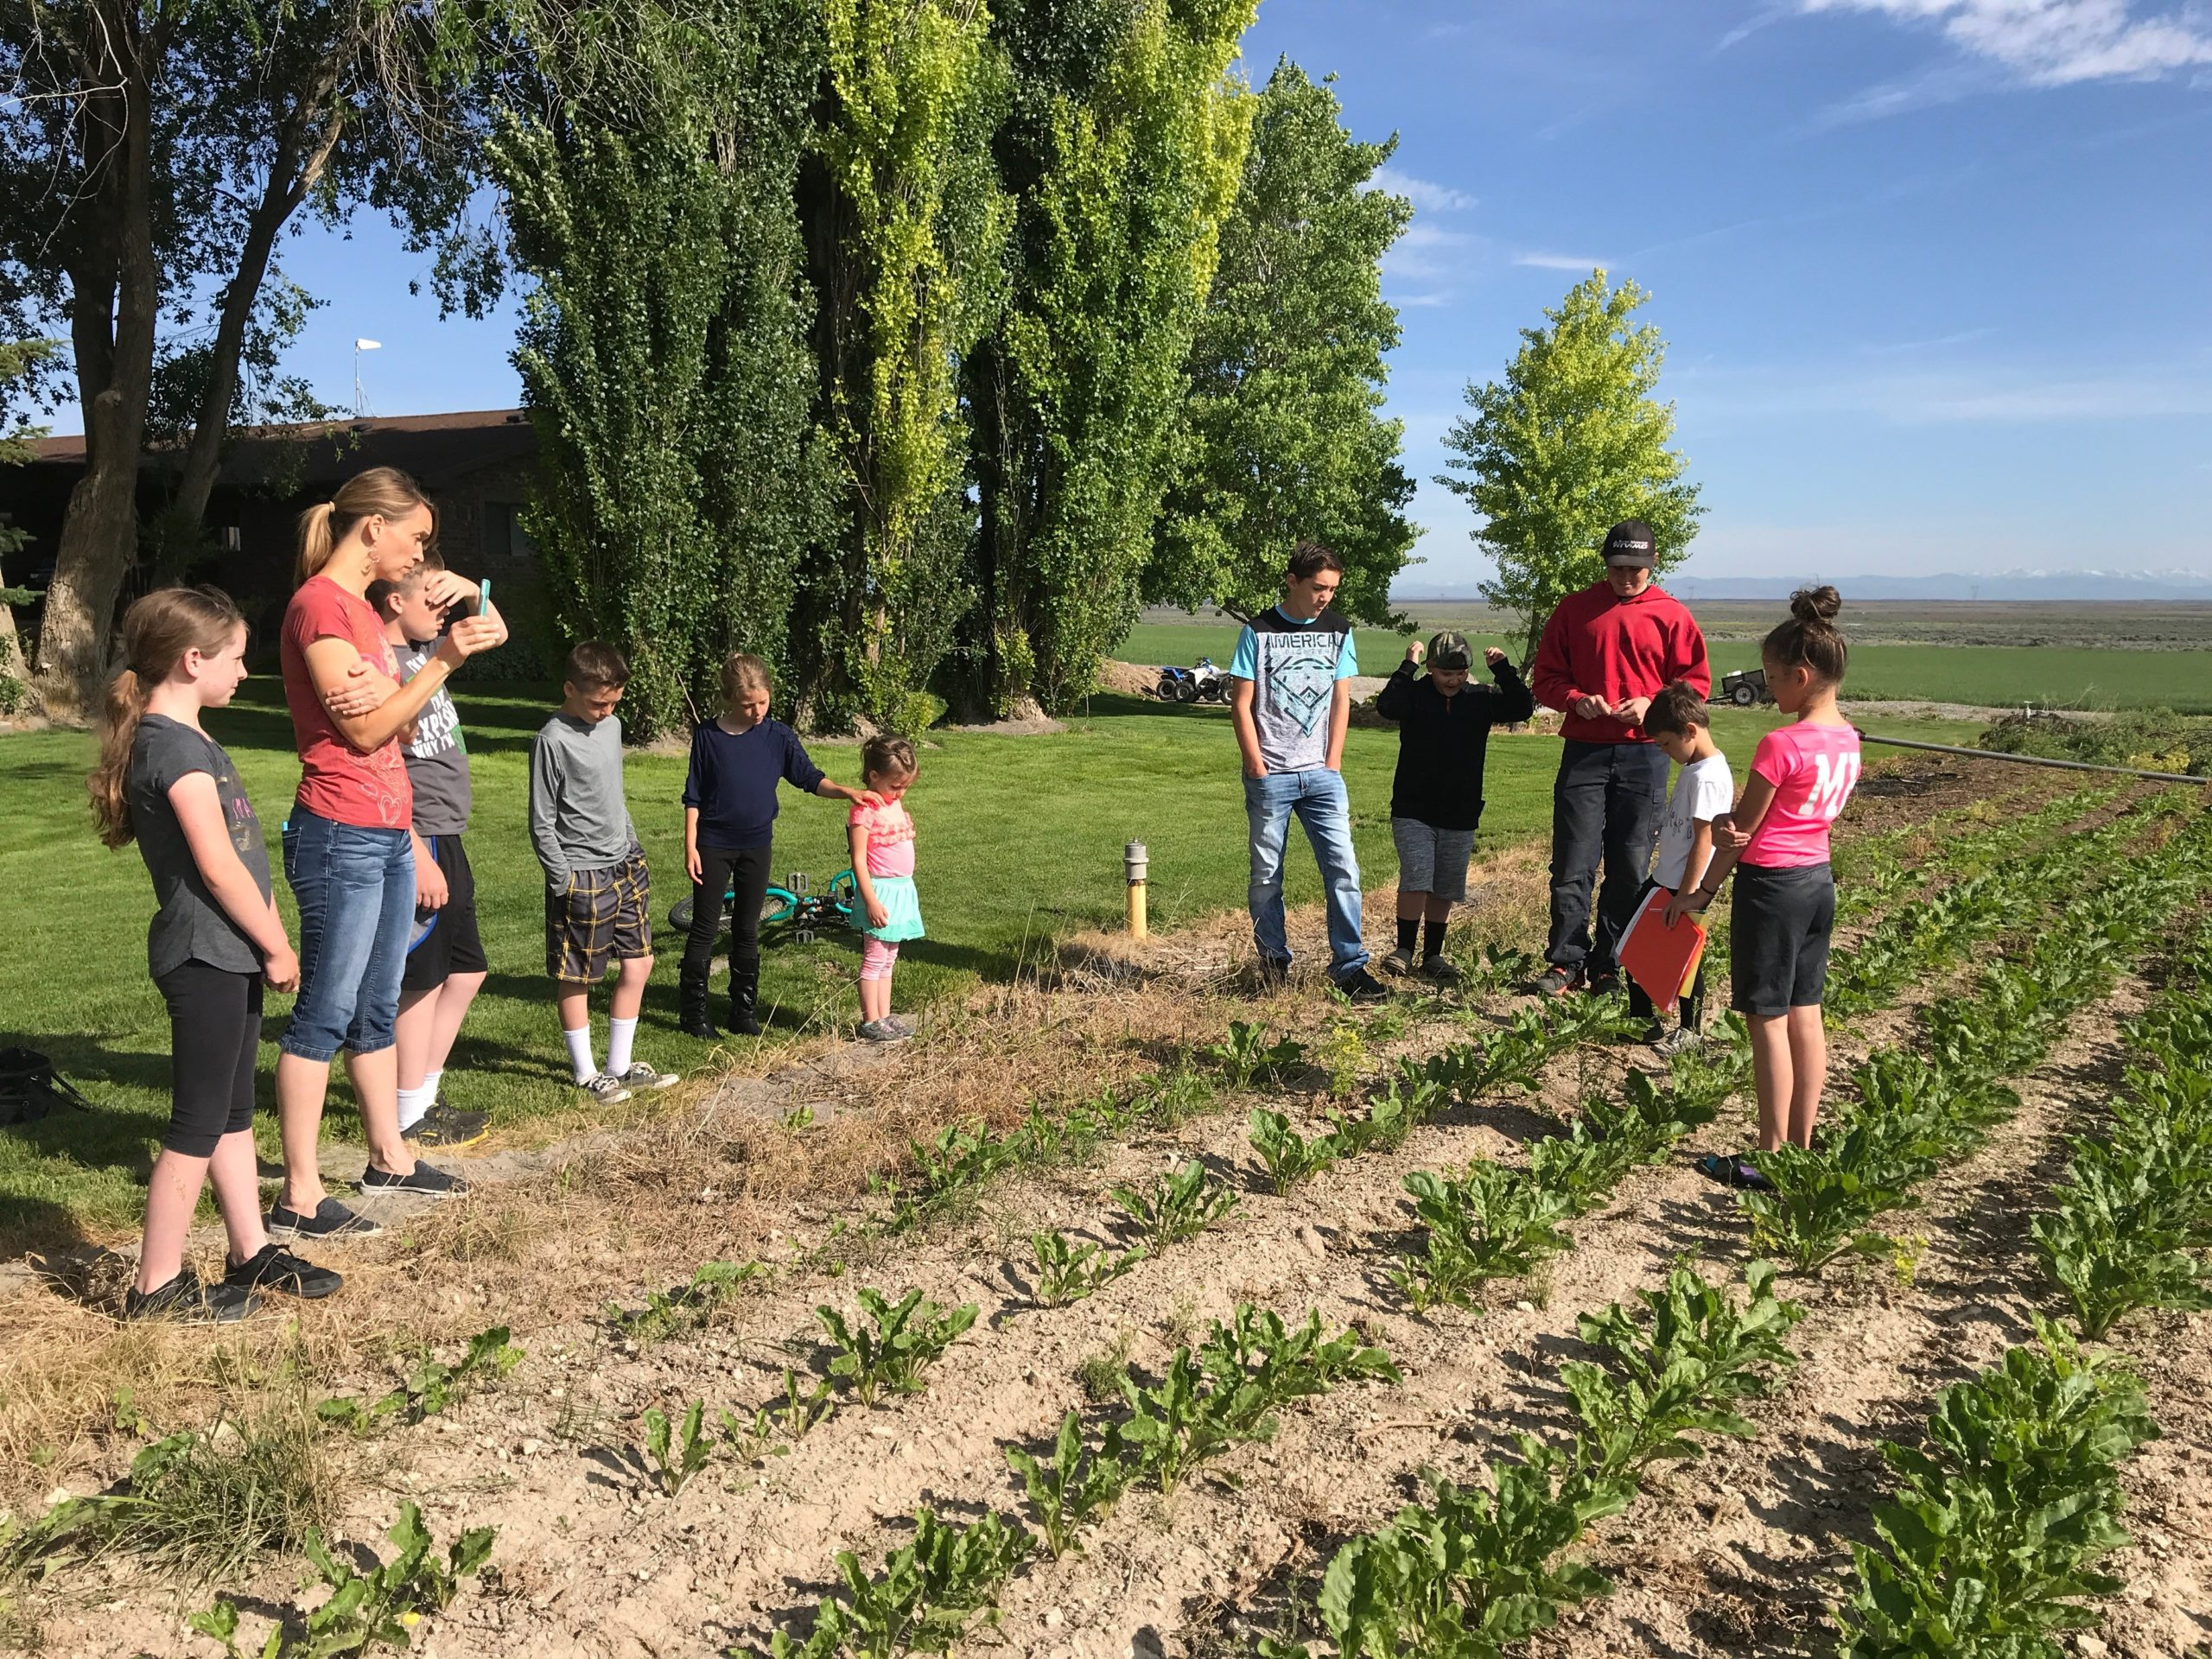 Mindy's 2 kids learning about weeds in the sugar beets.